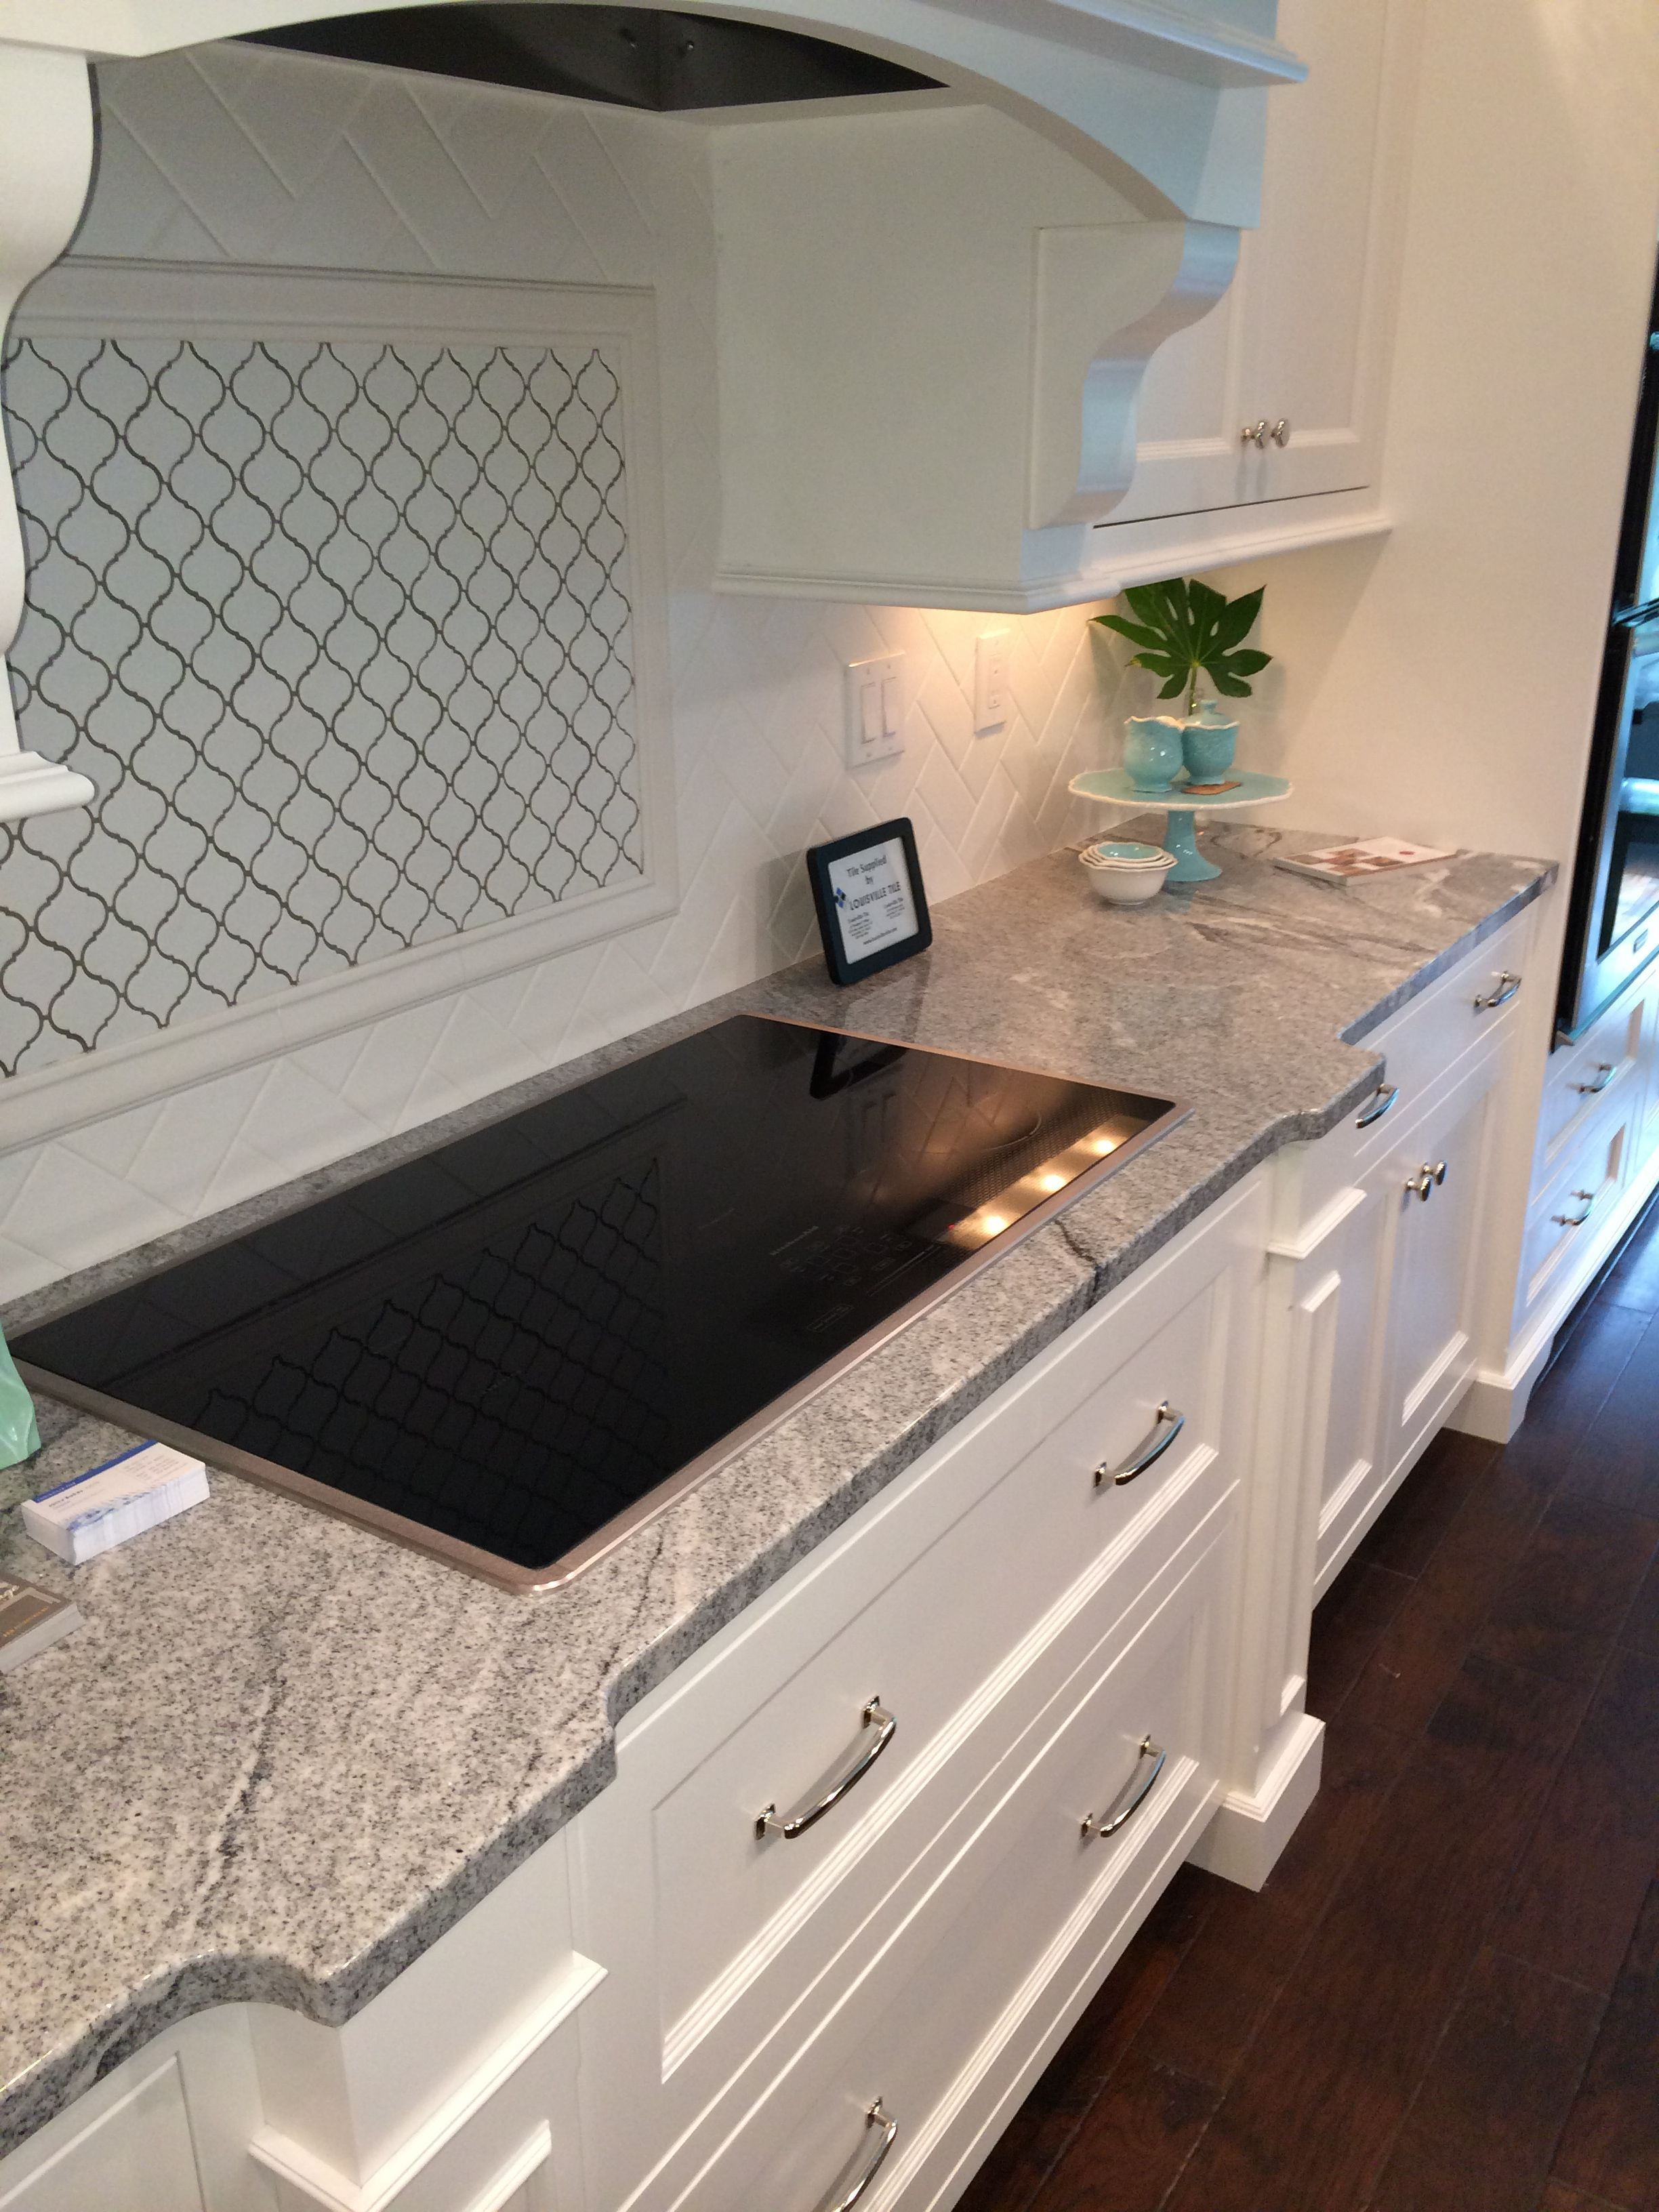 A Backsplash Is Used In Order To Protect The Wall From Splashes